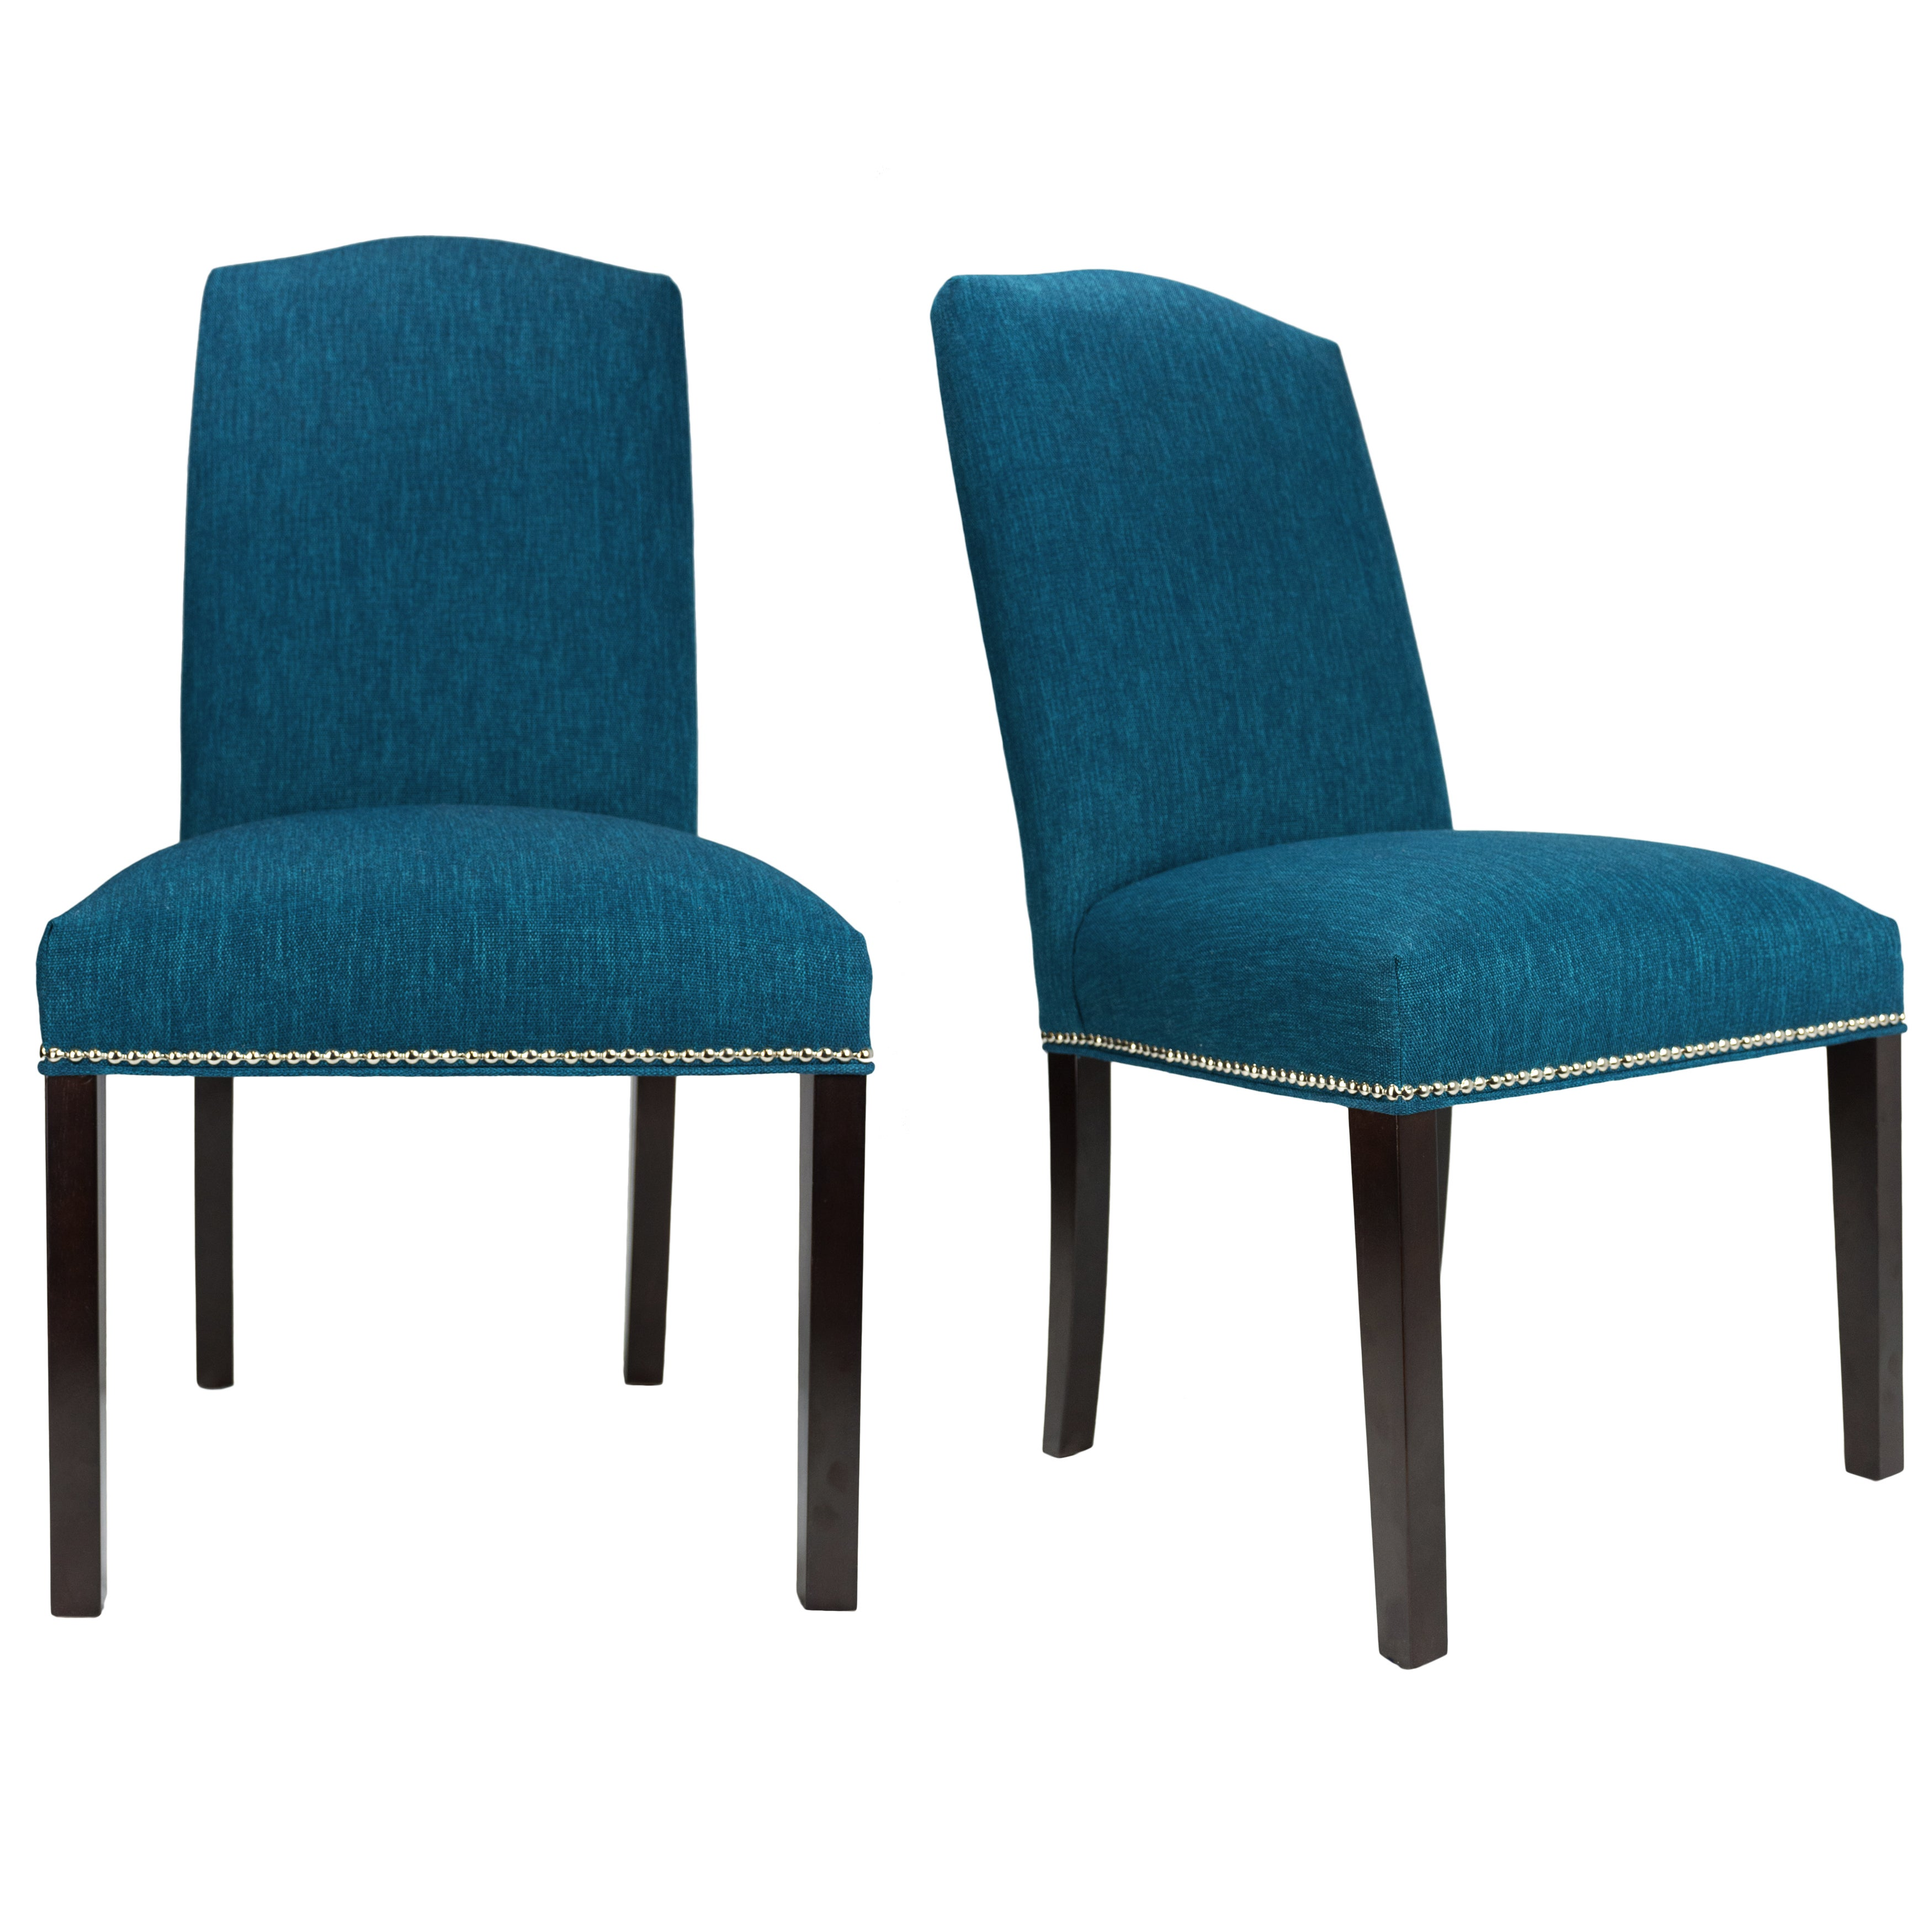 Key Largo Zenith Nailhead Trim Upholstered Dining Chairs (Set of 2) (Teal - Espresso Finish - Parson Chairs)